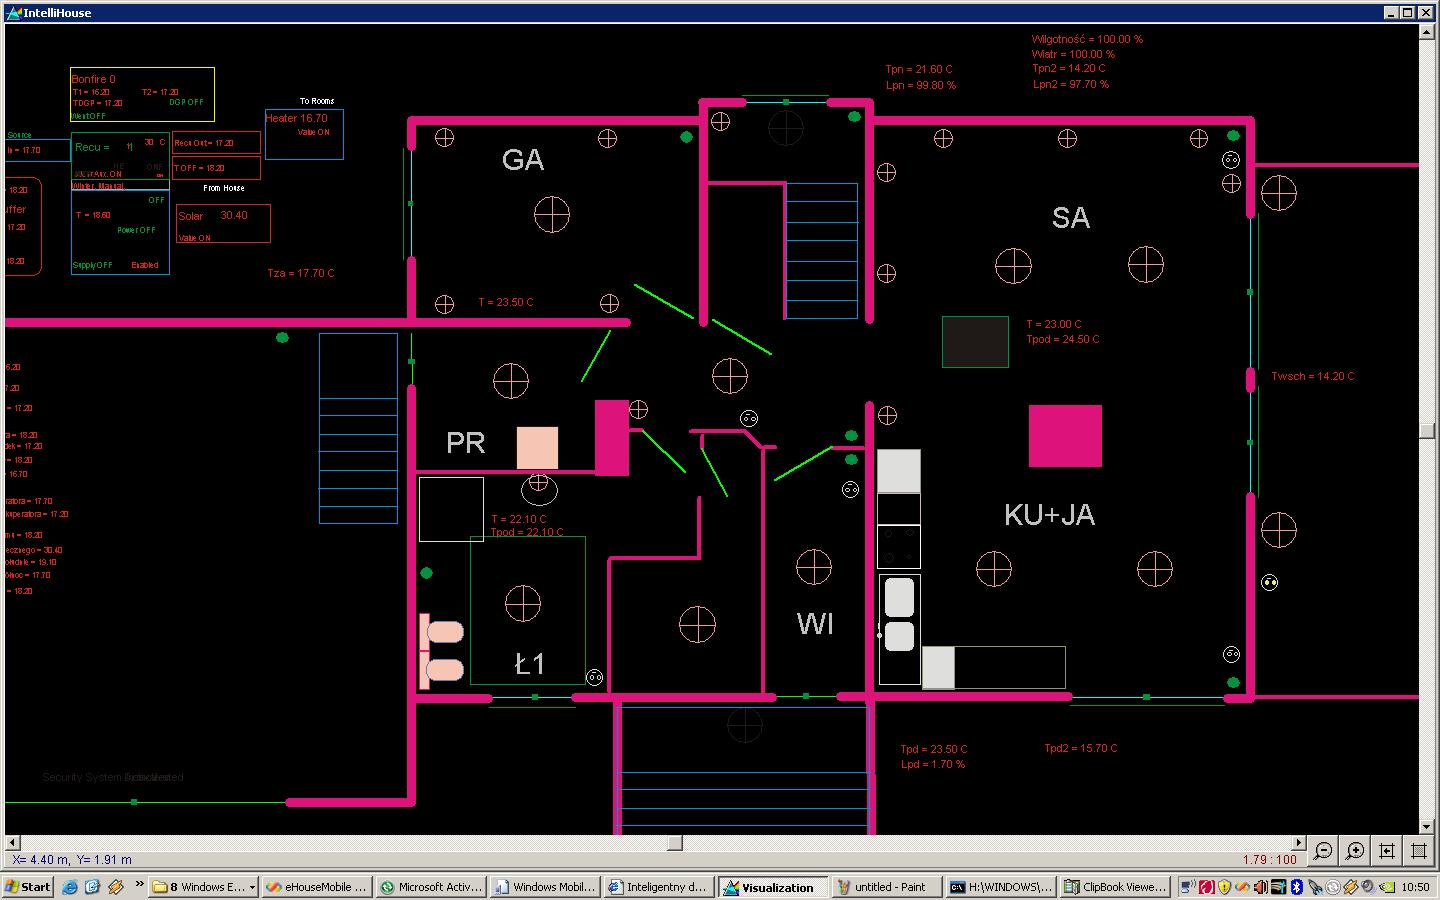 building automation controllo eHouse casa PC e Windows XP pannelli , Vista , 7 Visualizzazione PC